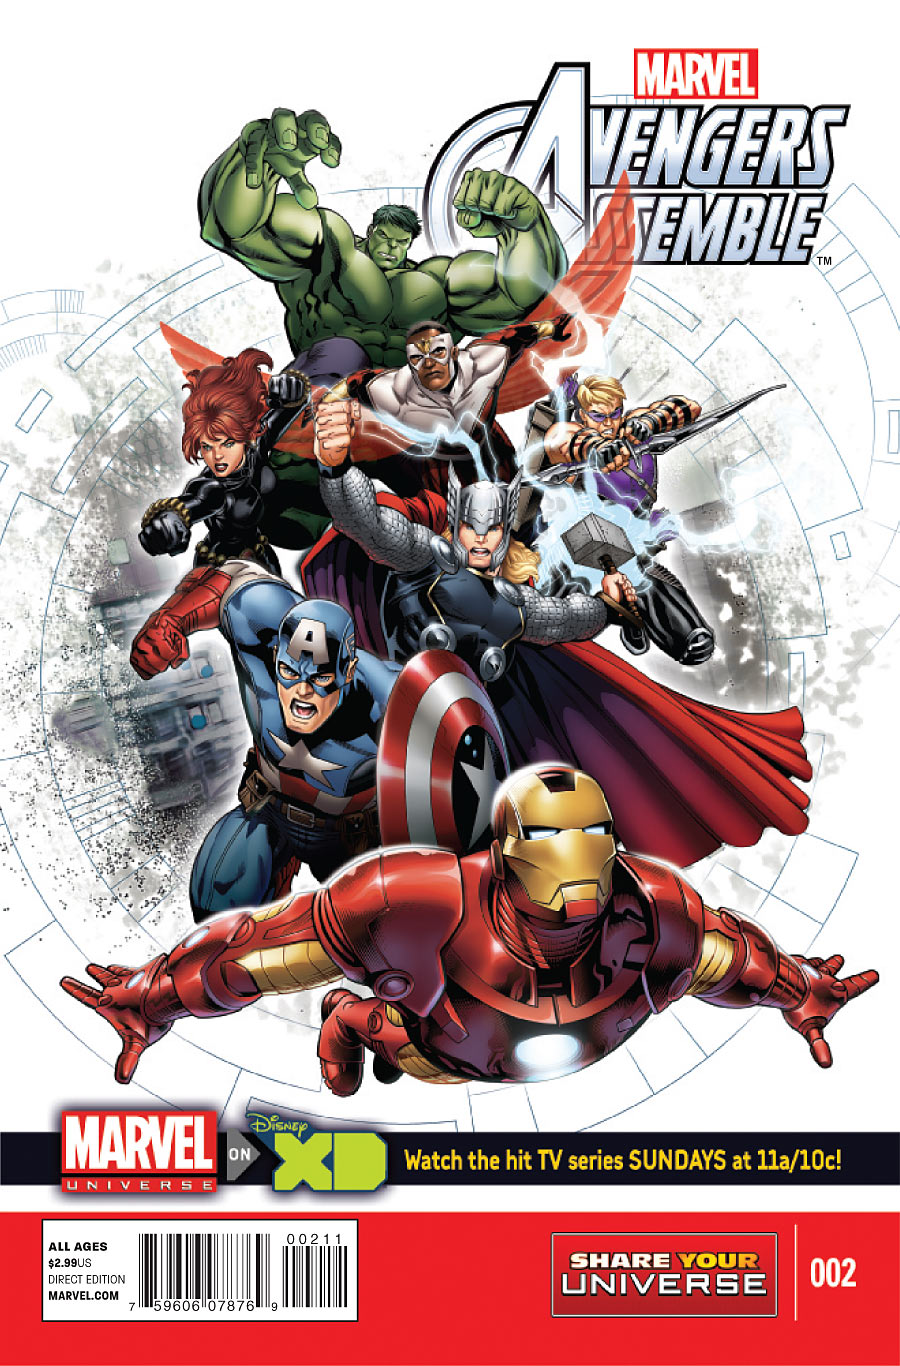 marvel universe avengers assemble vol 1 marvel database fandom powered by wikia. Black Bedroom Furniture Sets. Home Design Ideas